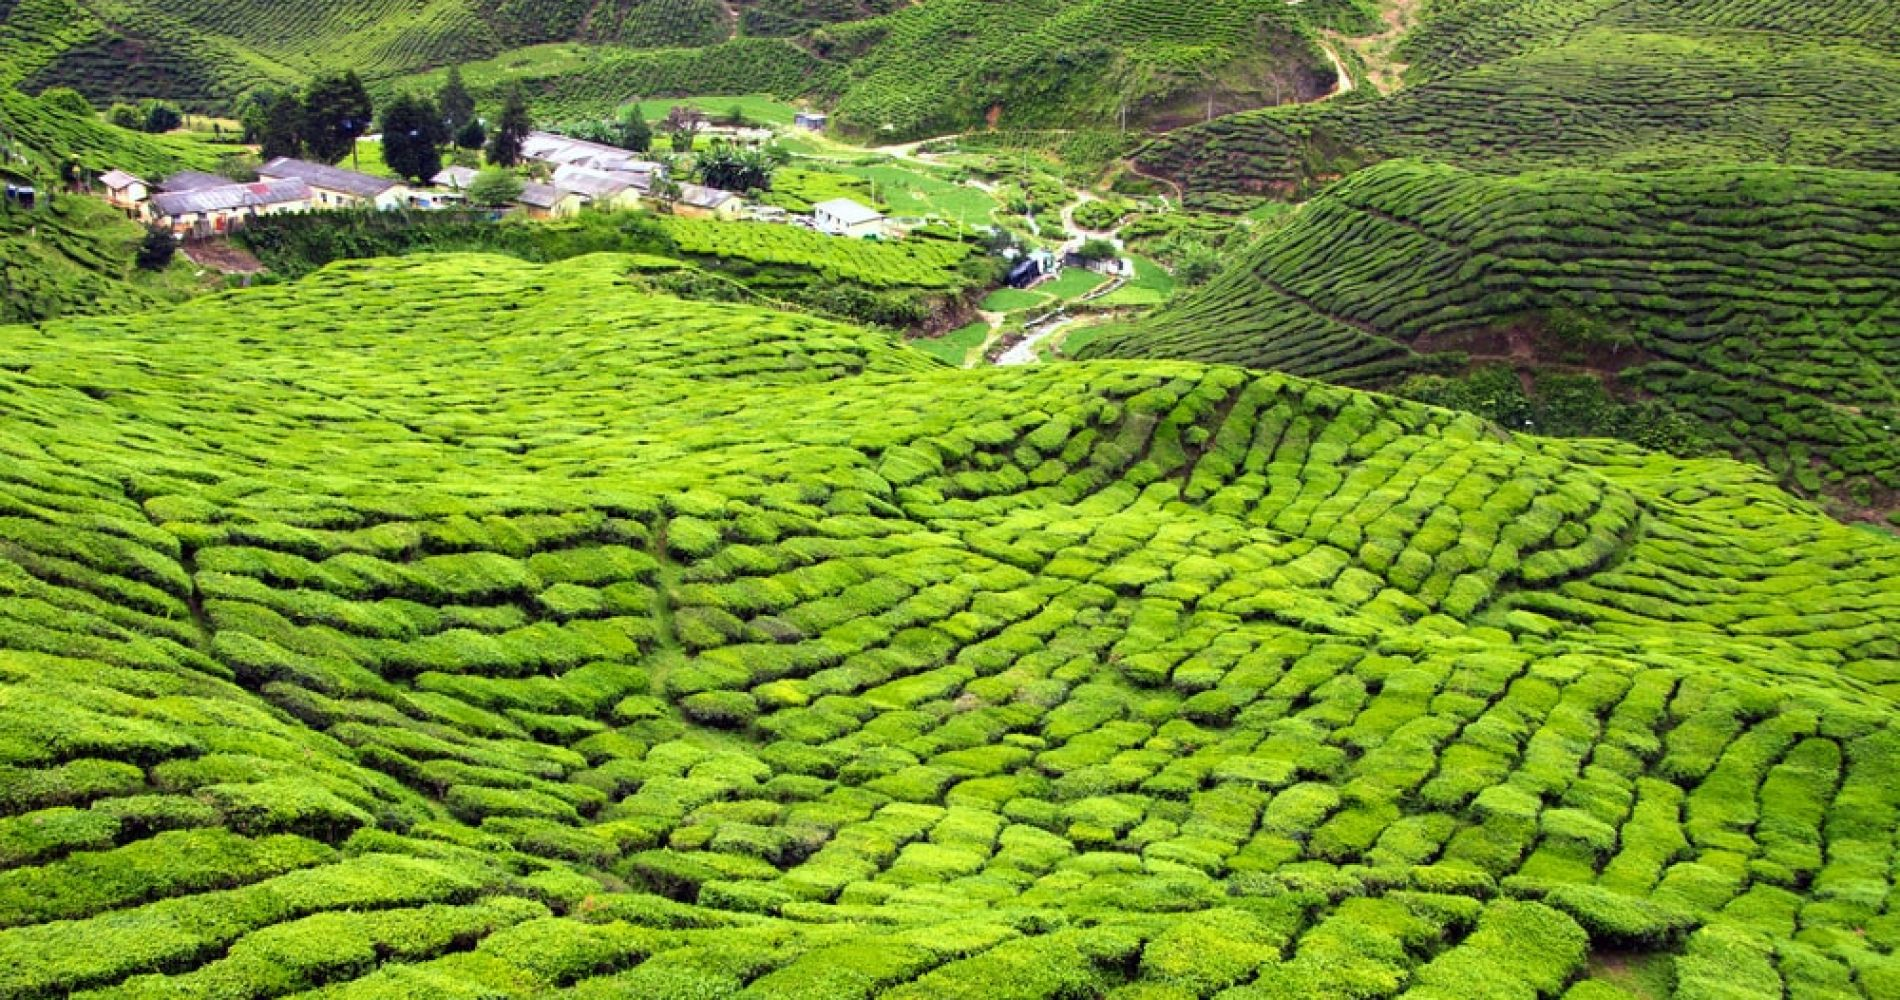 Enjoy the views of Tea Plantation in Cameron Highlands in Malaysia